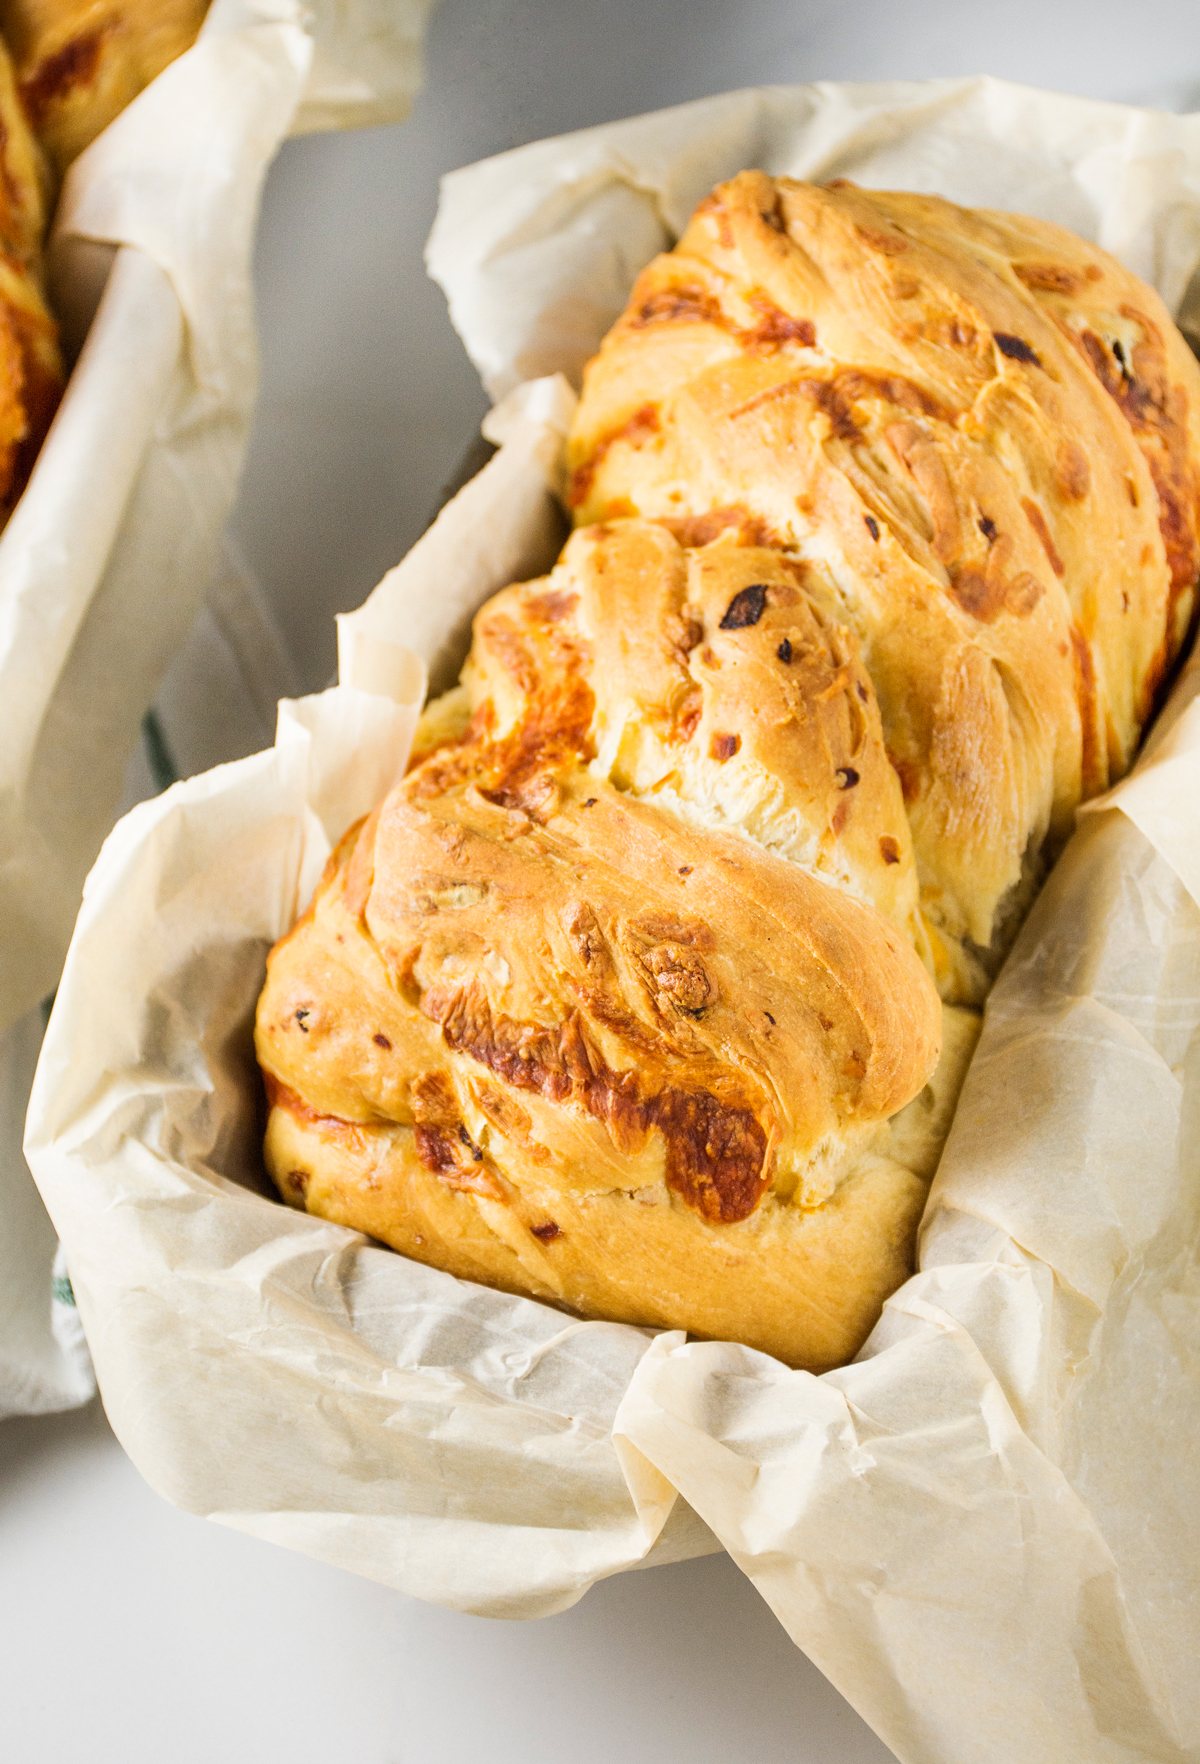 Caramelized Onion Cheddar Bread